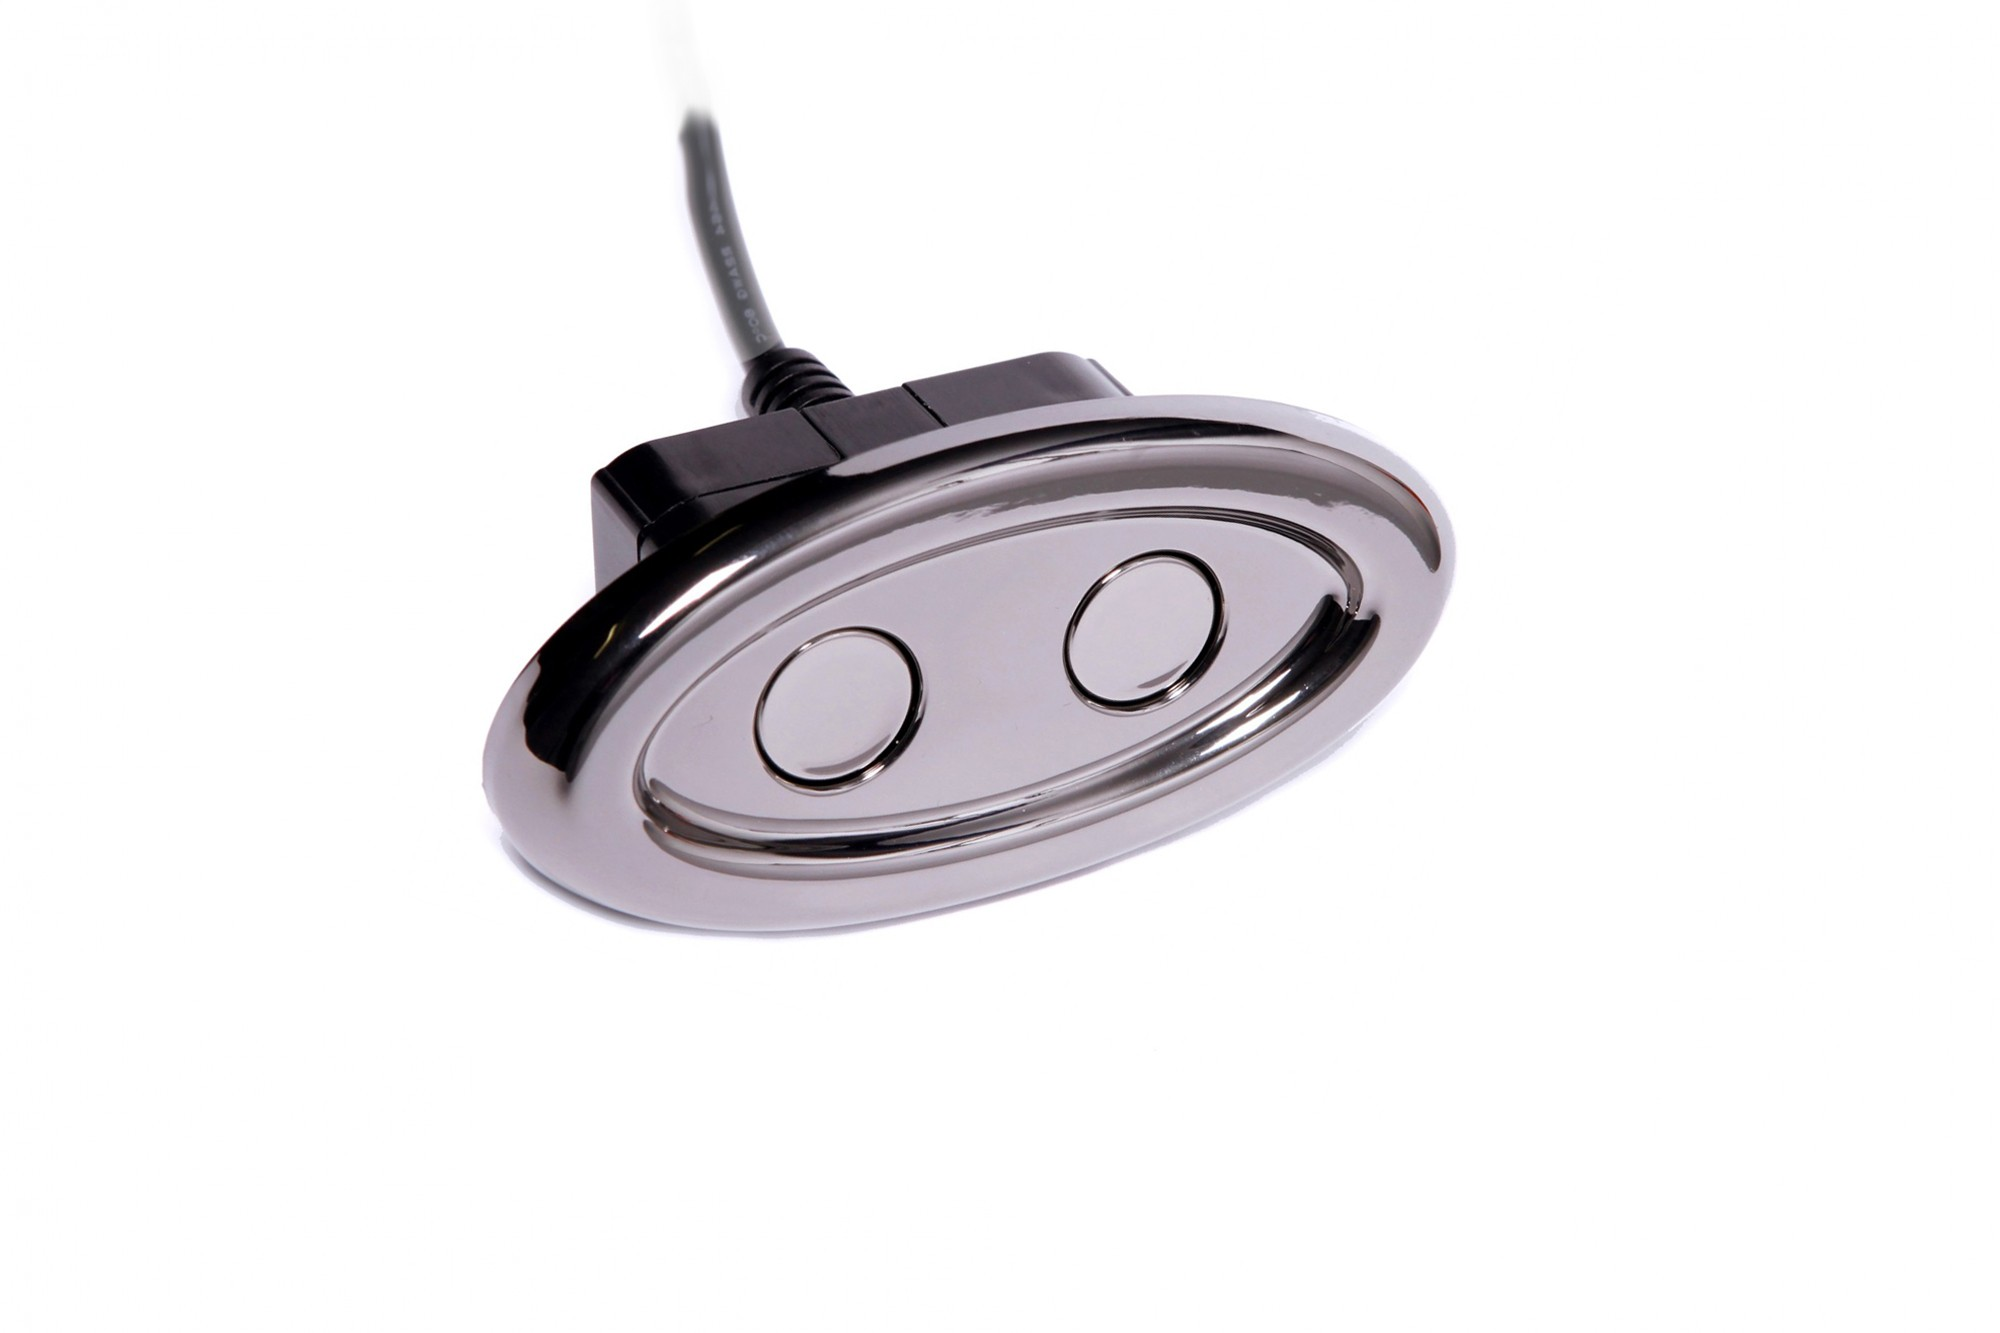 2-Button Oval Power Recline Switch in Black Chrome Finish